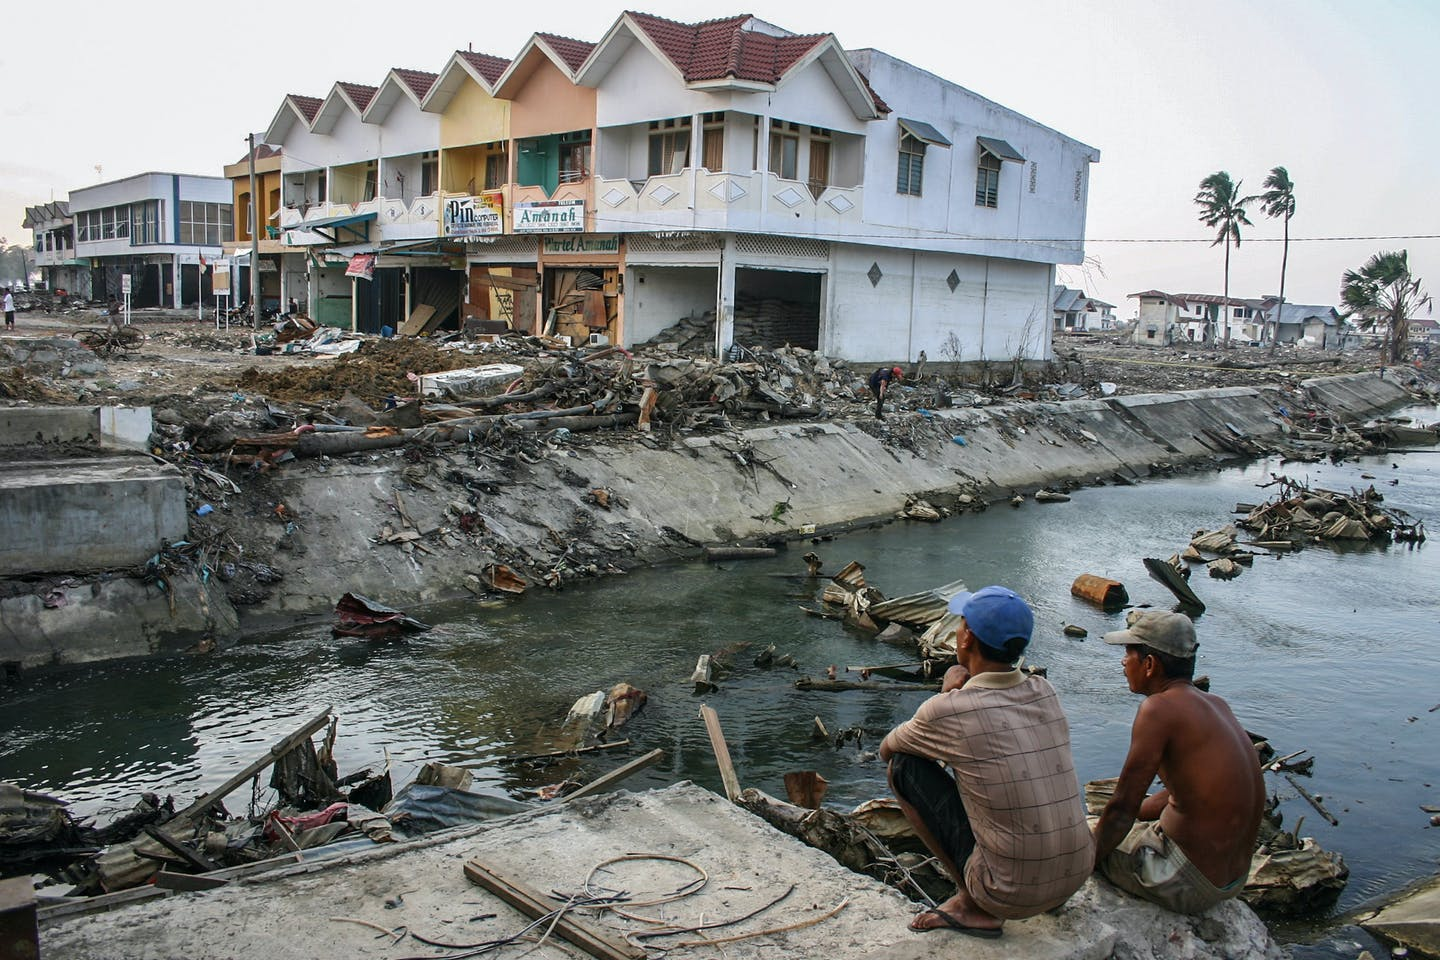 The aftermath of the Boxing Day tsunami in Banda Aceh, Indonesia